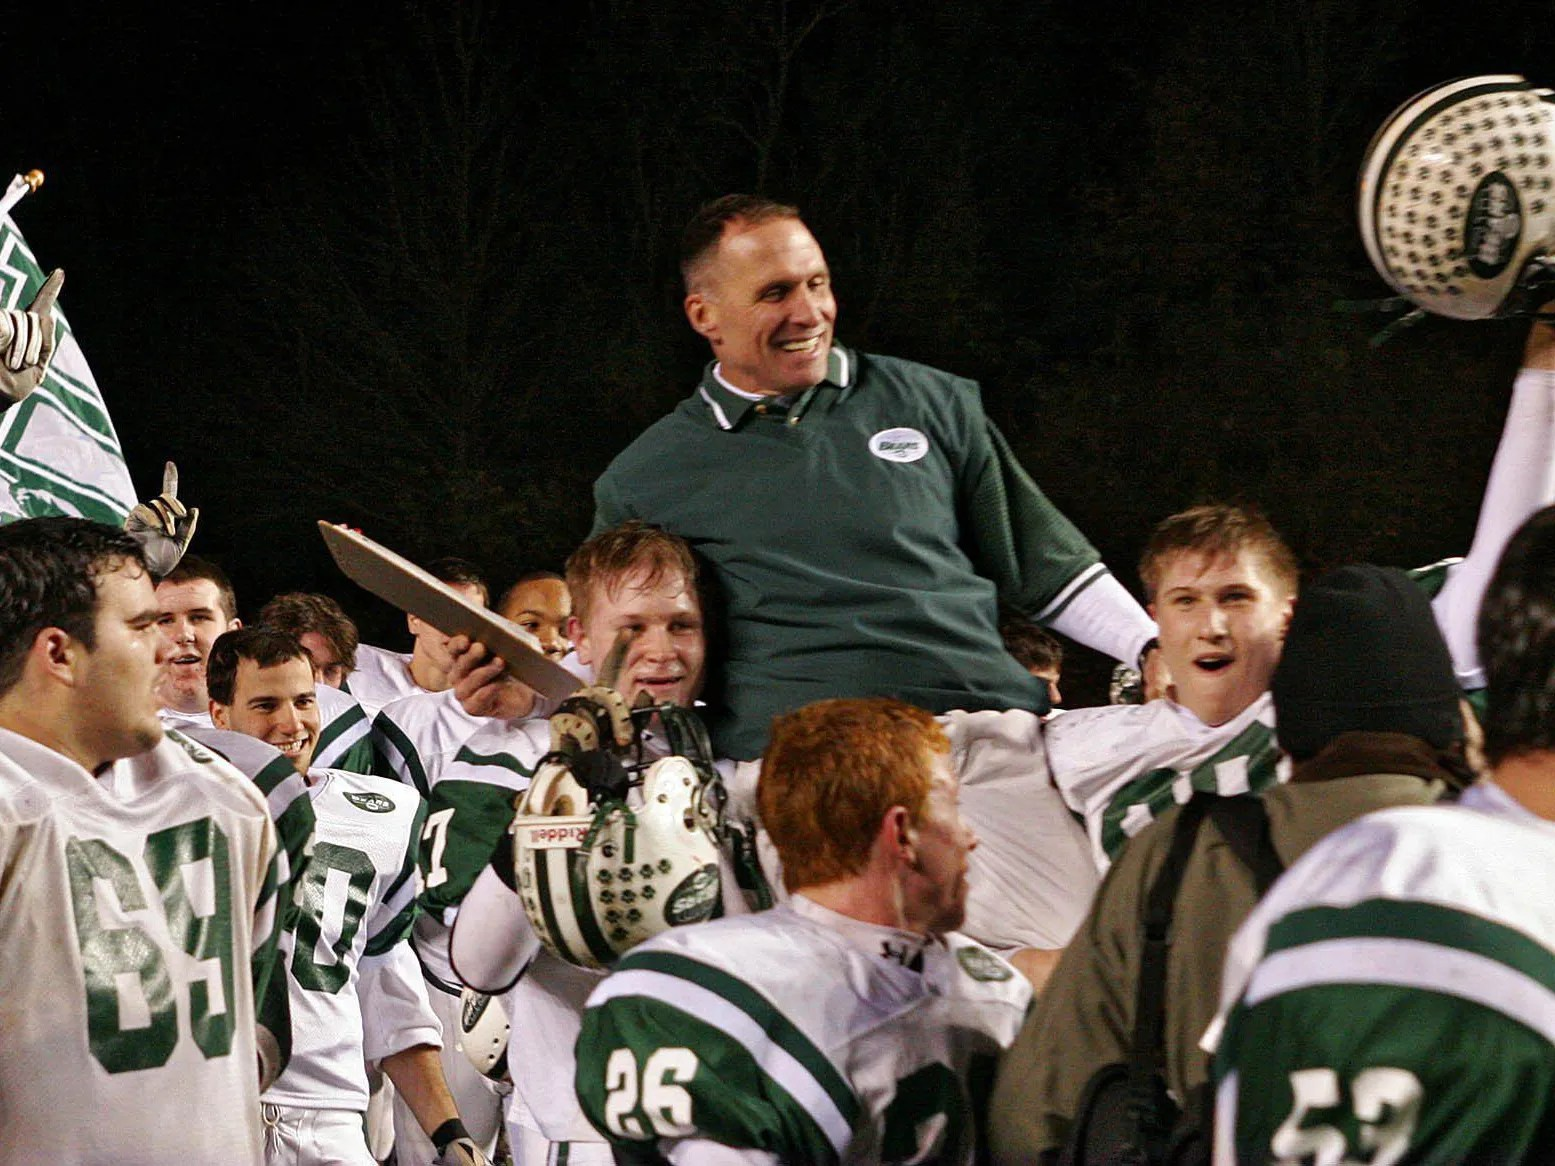 Coach Borden s early look at football playoff picture for GMC teams ... 17dd550cb